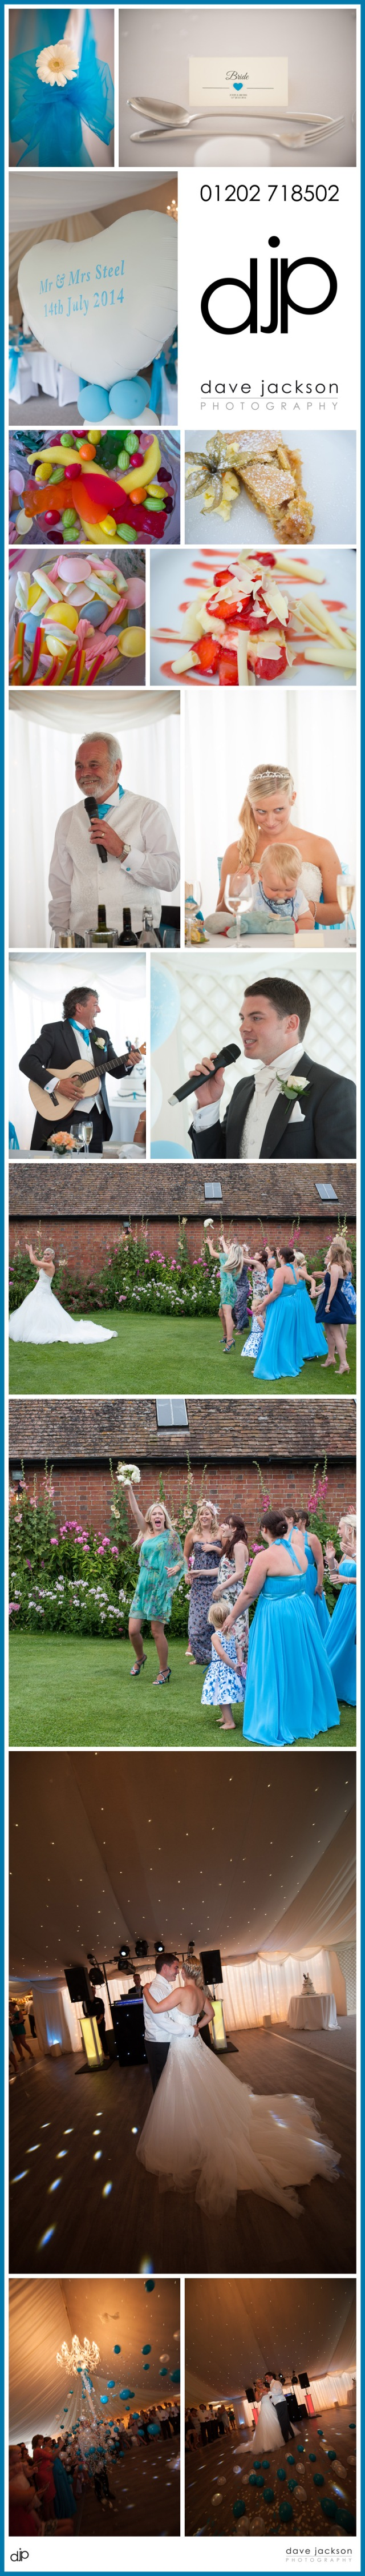 Parley Manor Wedding Photographer